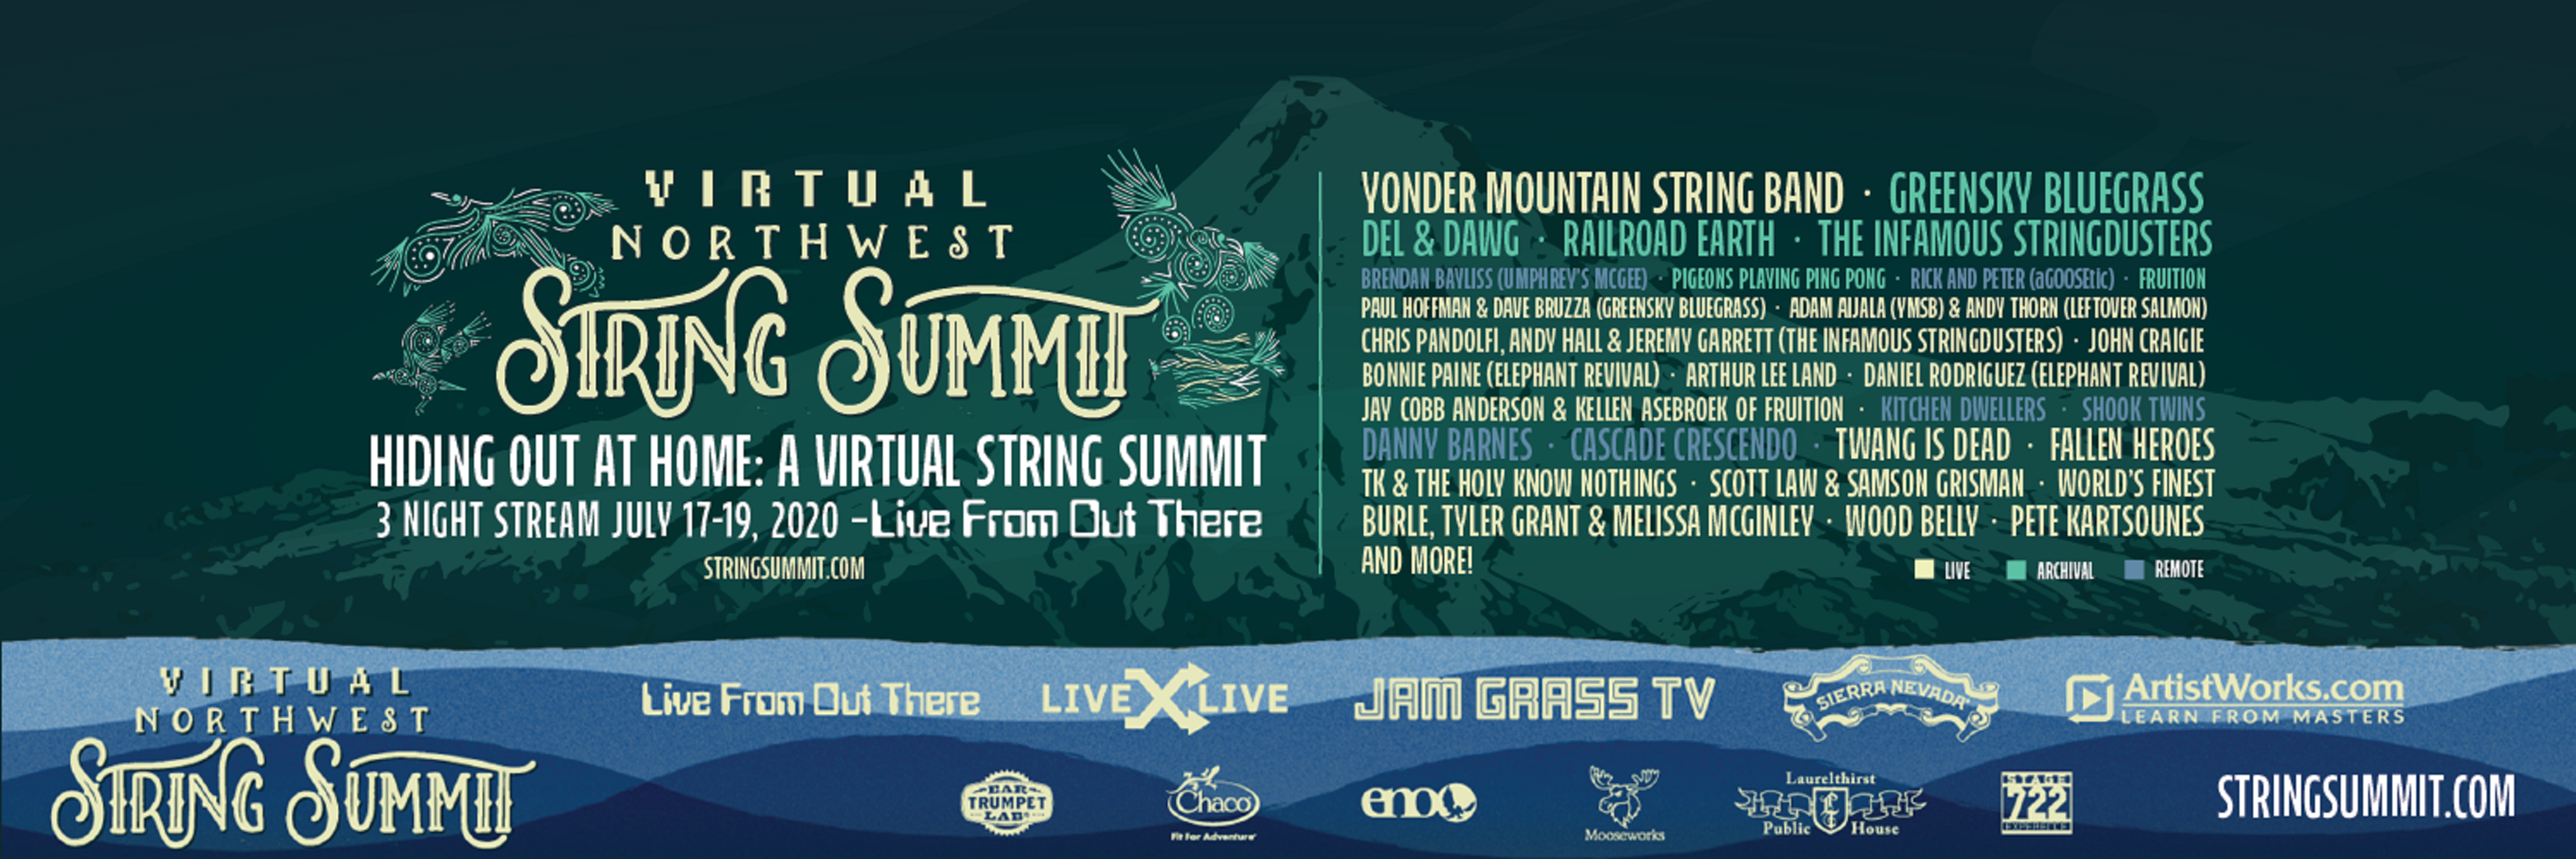 Northwest String Summit Announces Hiding Out At Home: A Virtual Northwest String Summit, June 17-19